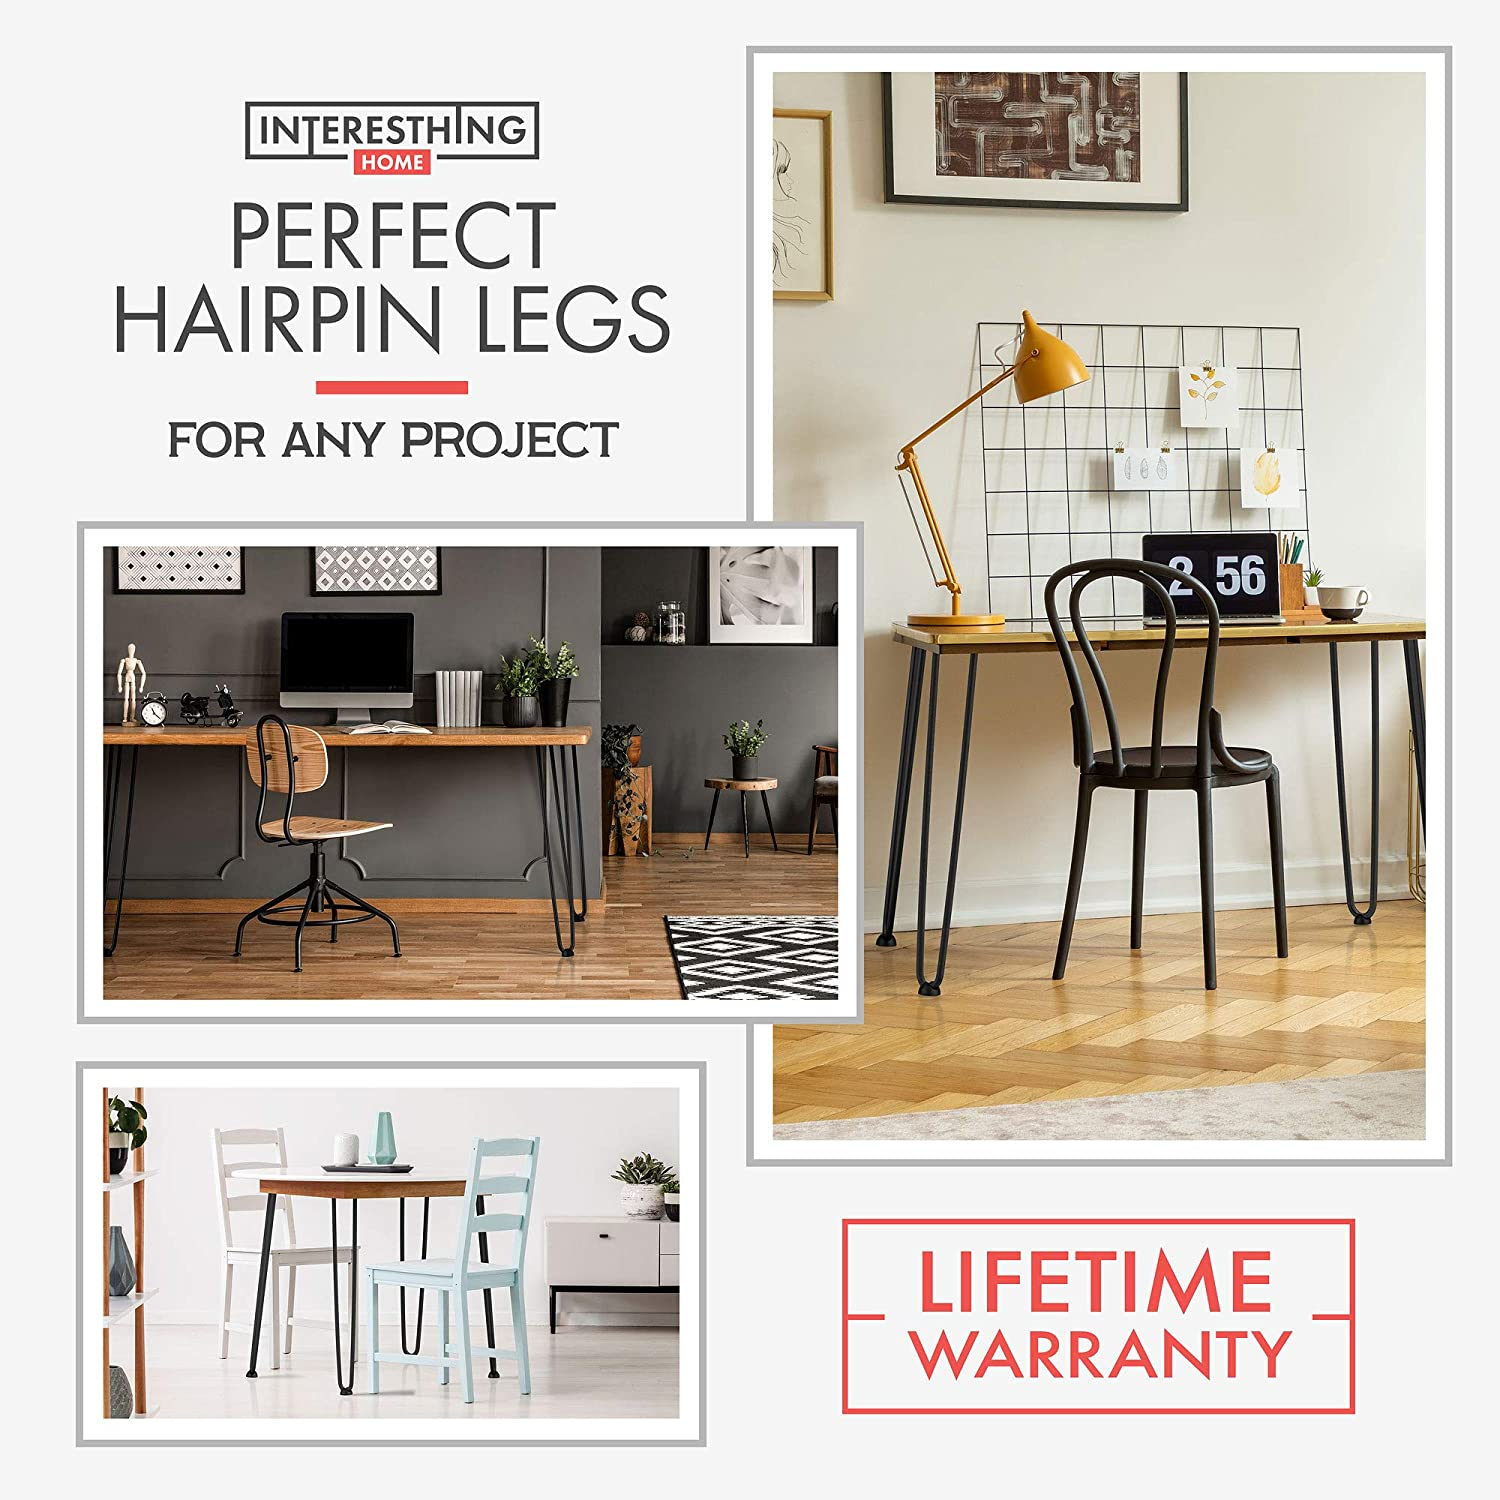 Carpete Skateboard Table Legs with Floor Protectors Scerws 16 Inch Hairpin Coffee Table Legs of Shoe Rack Stool Side Table Set of 2 Metal Furniture Legs for Home DIY-White